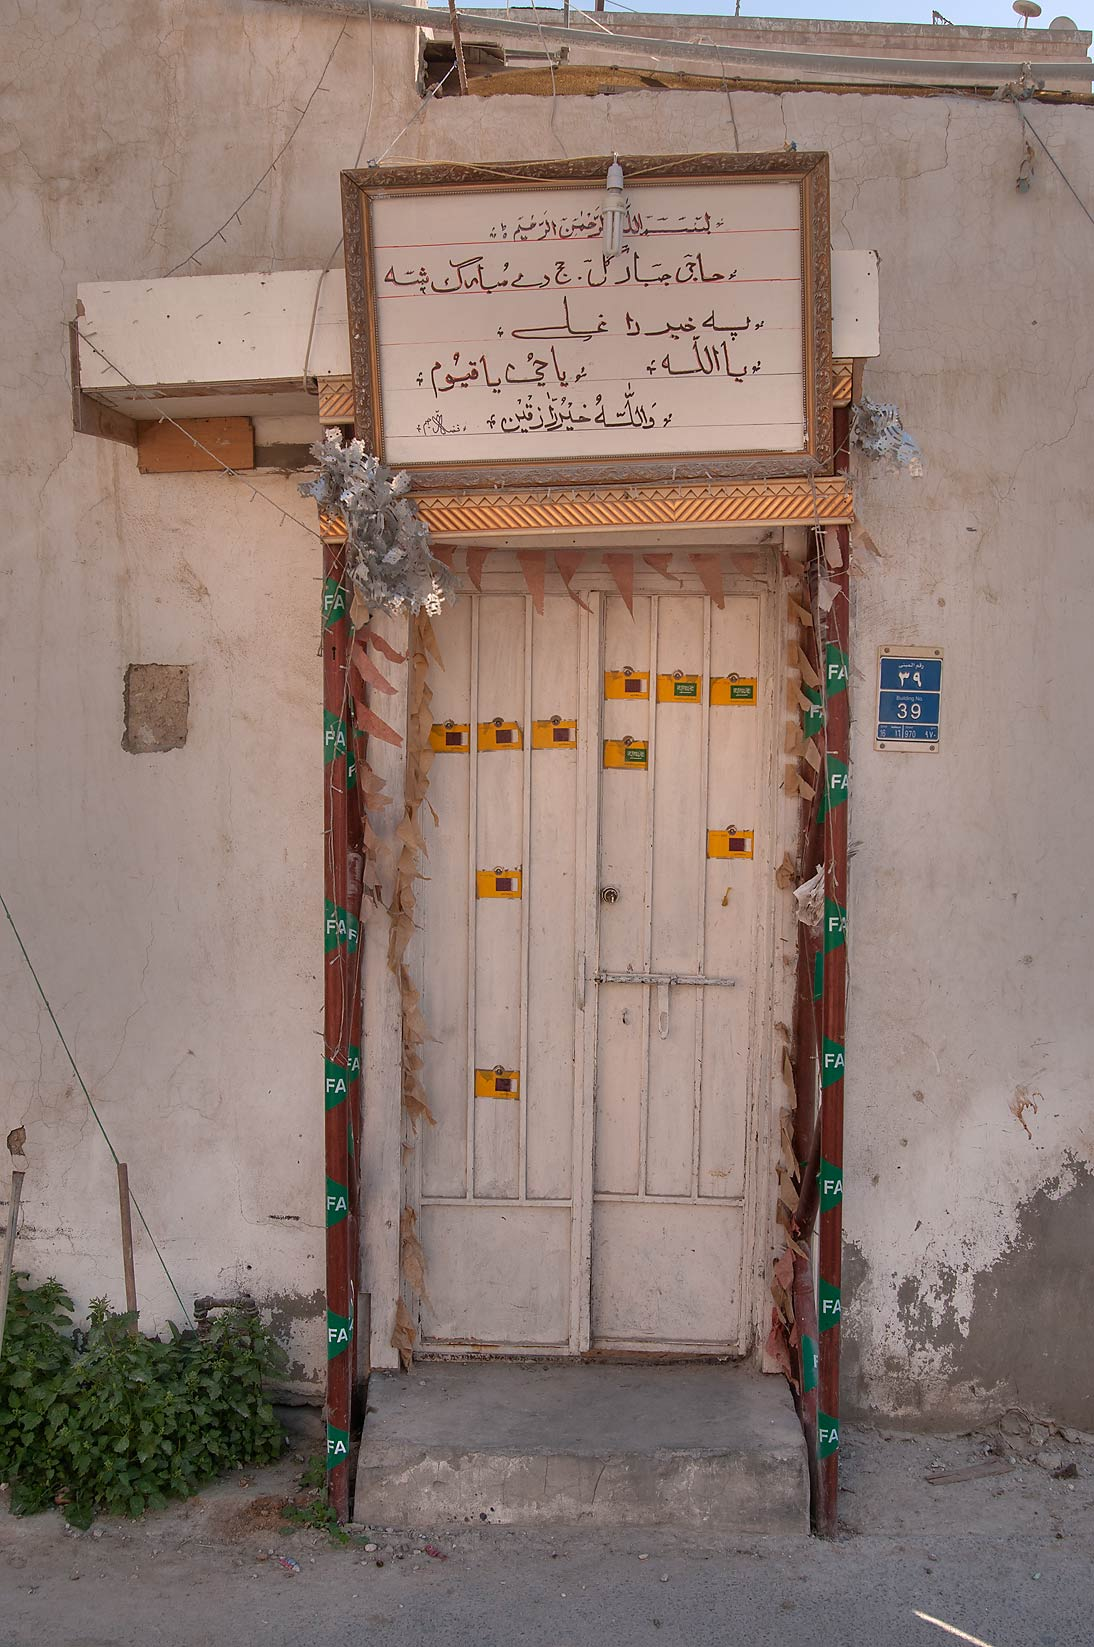 A door decorated by stickers with flags near Tariq Bin Ziyad St.. Doha, Qatar